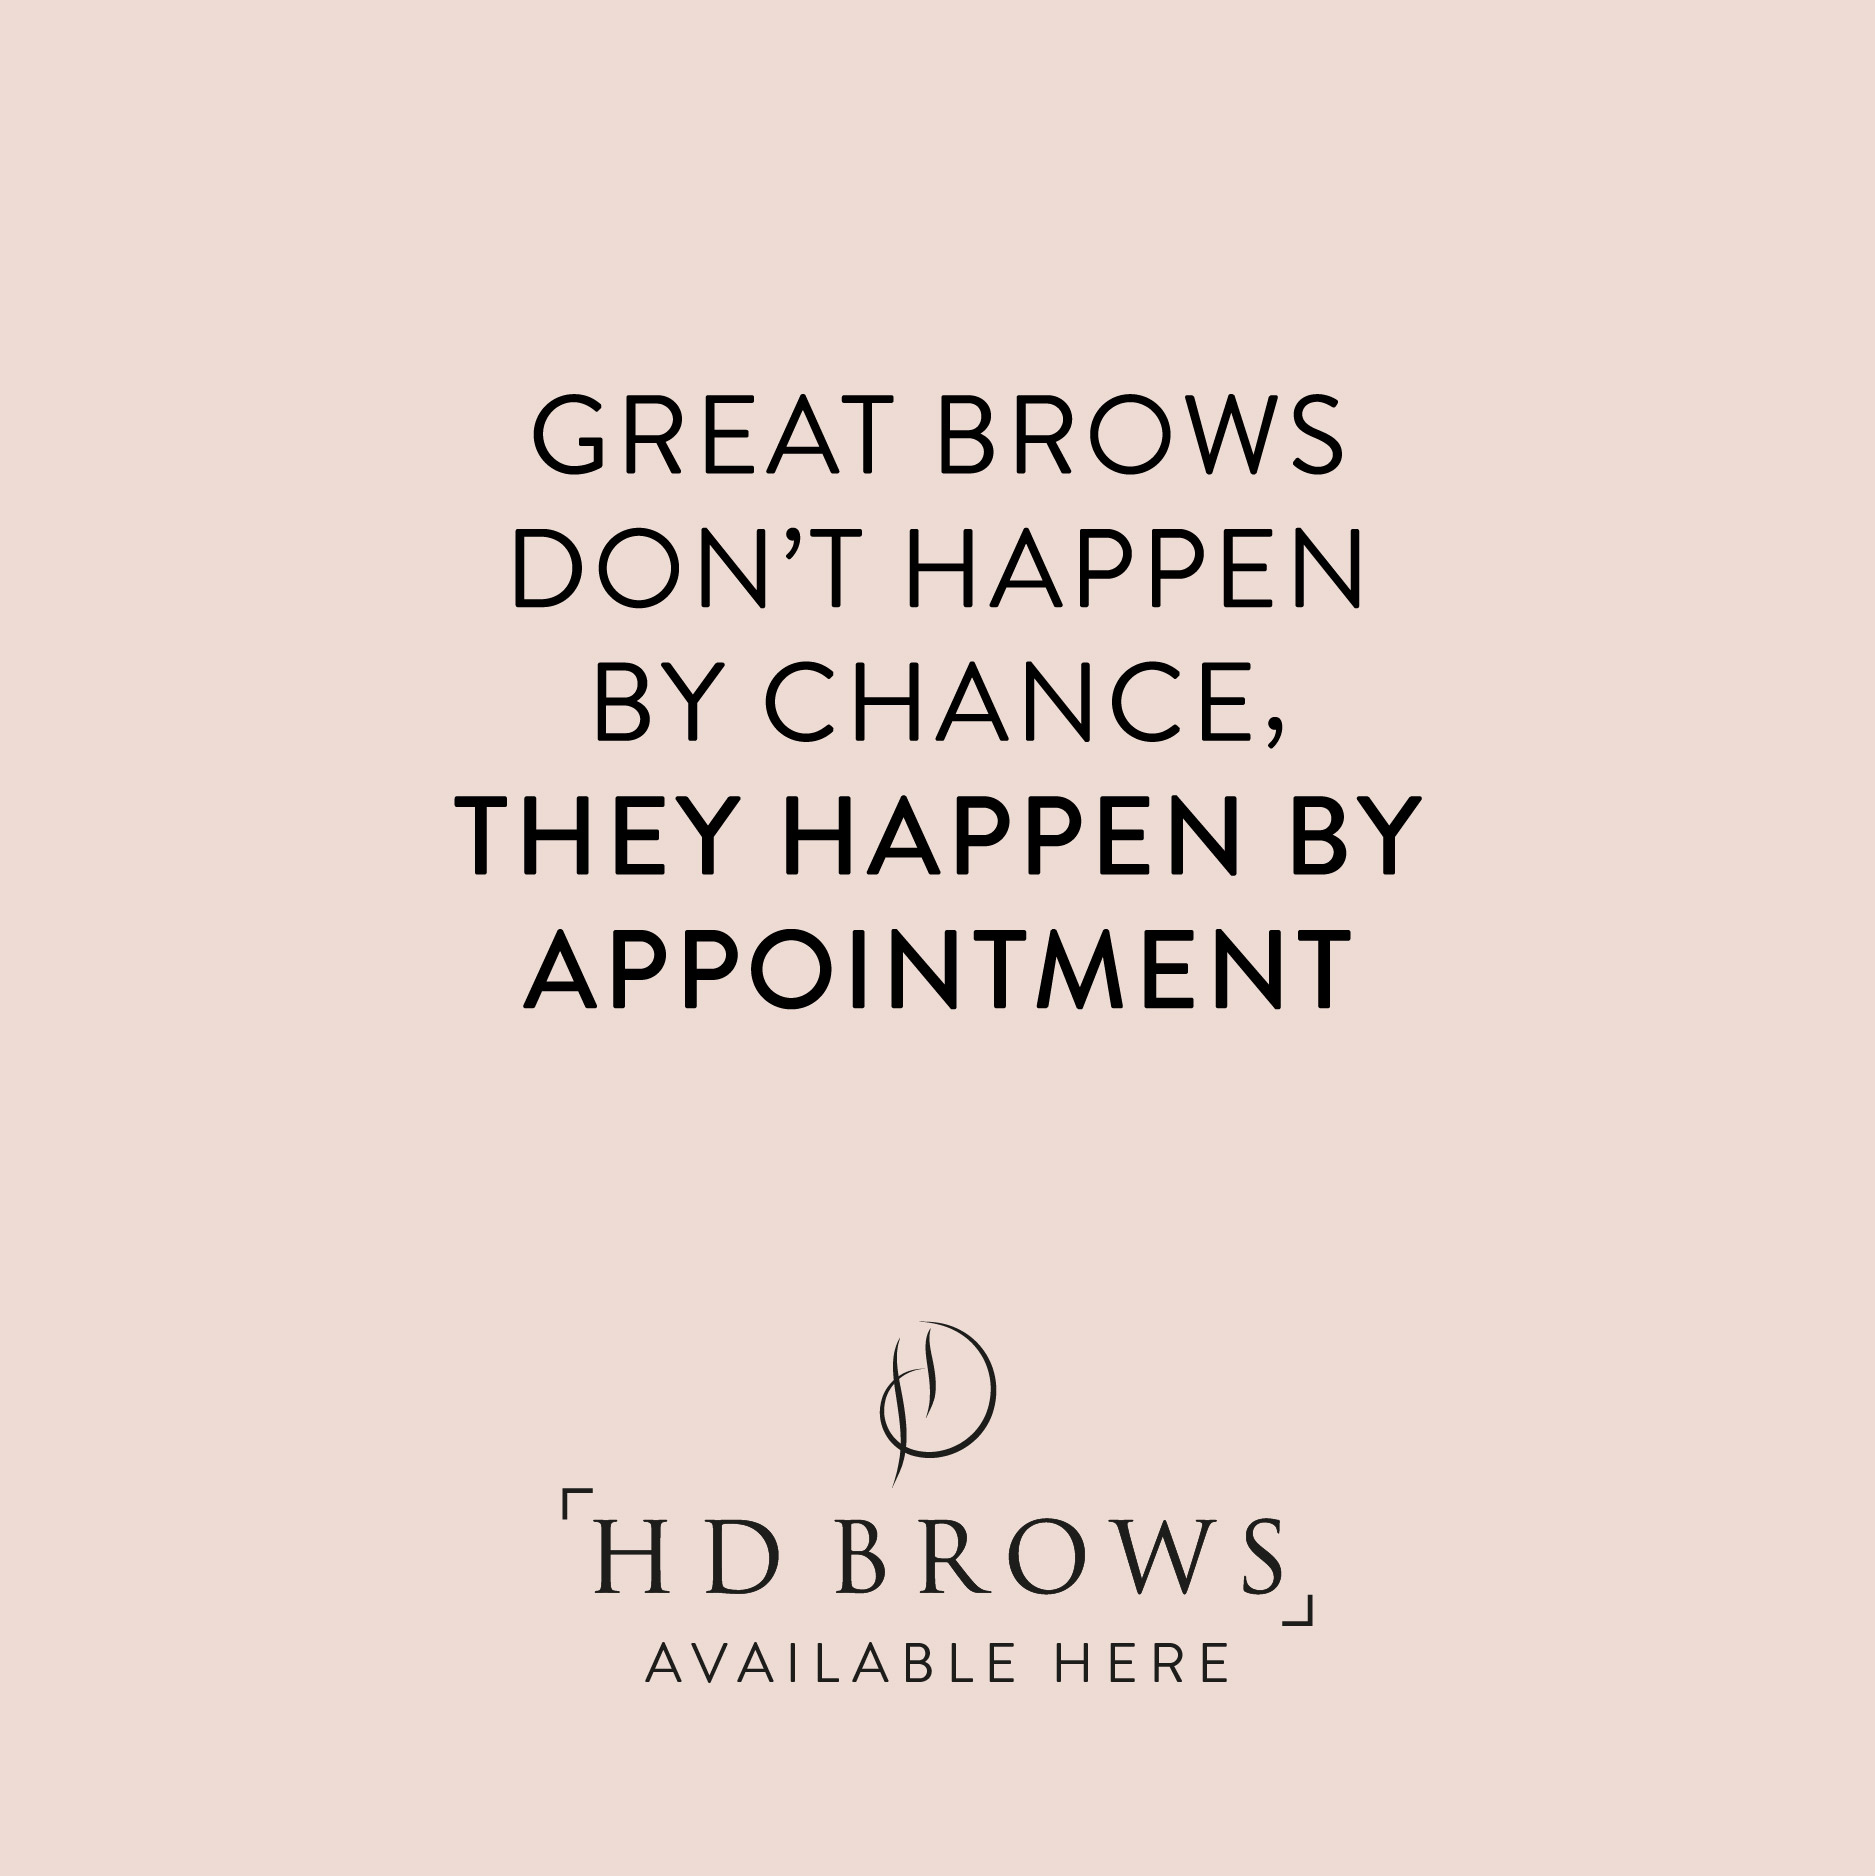 BROWS_HAPPEN_BY_APPOINTMENT